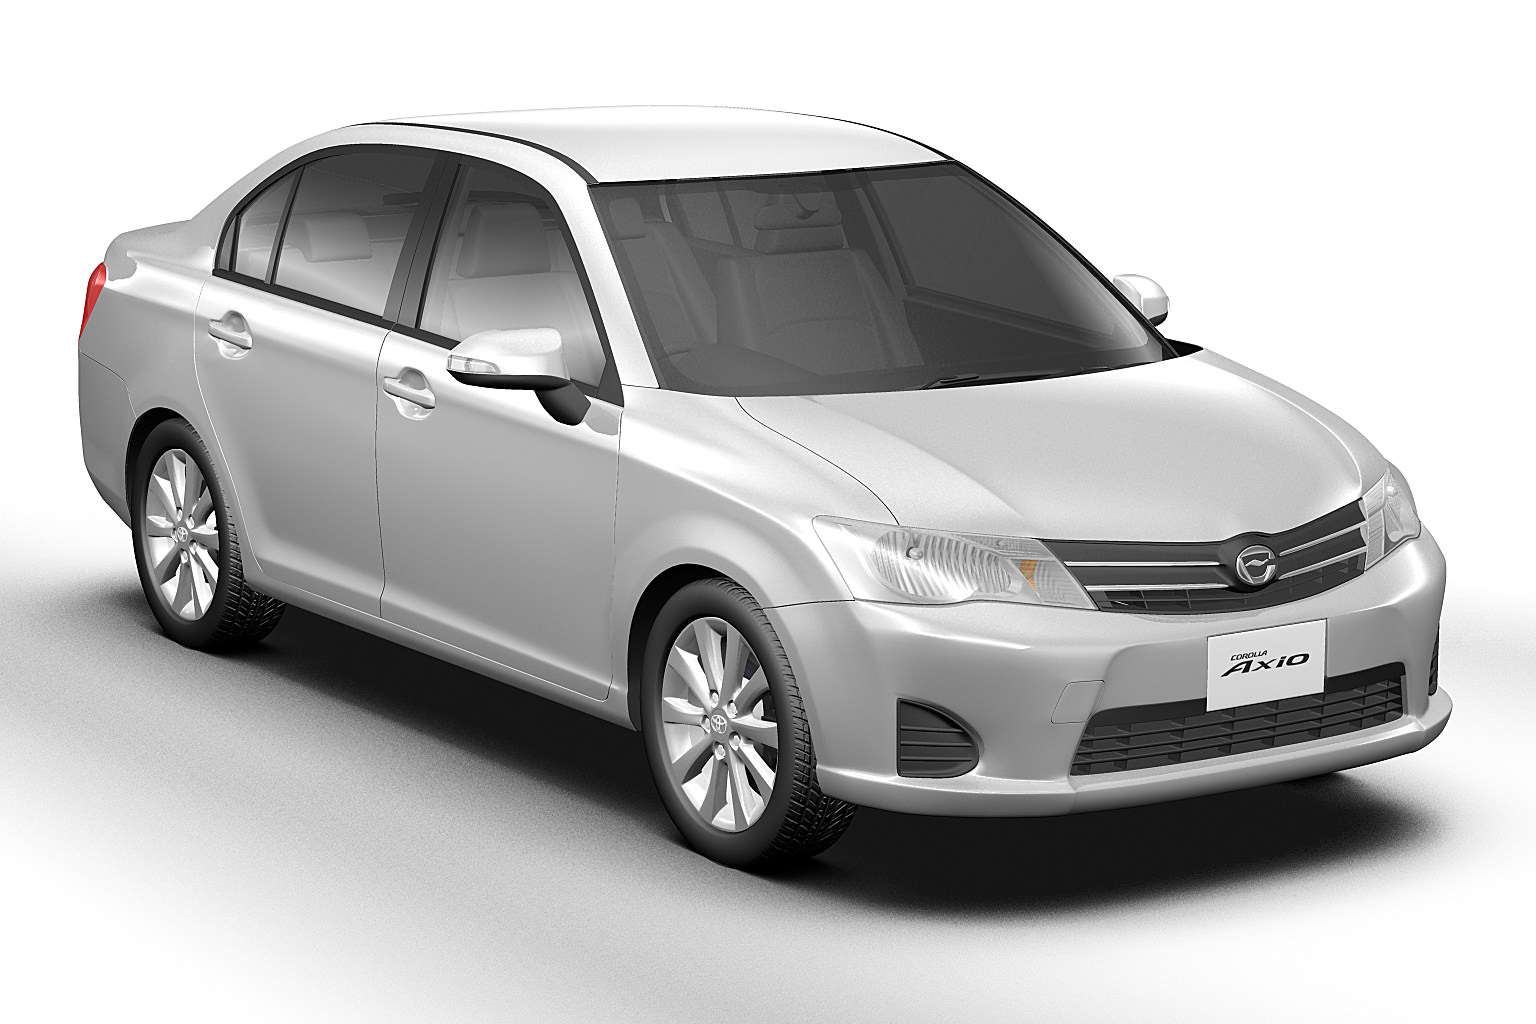 2013 toyota corolla axio japan 3d model max obj 3ds fbx c4d lwo lw lws. Black Bedroom Furniture Sets. Home Design Ideas